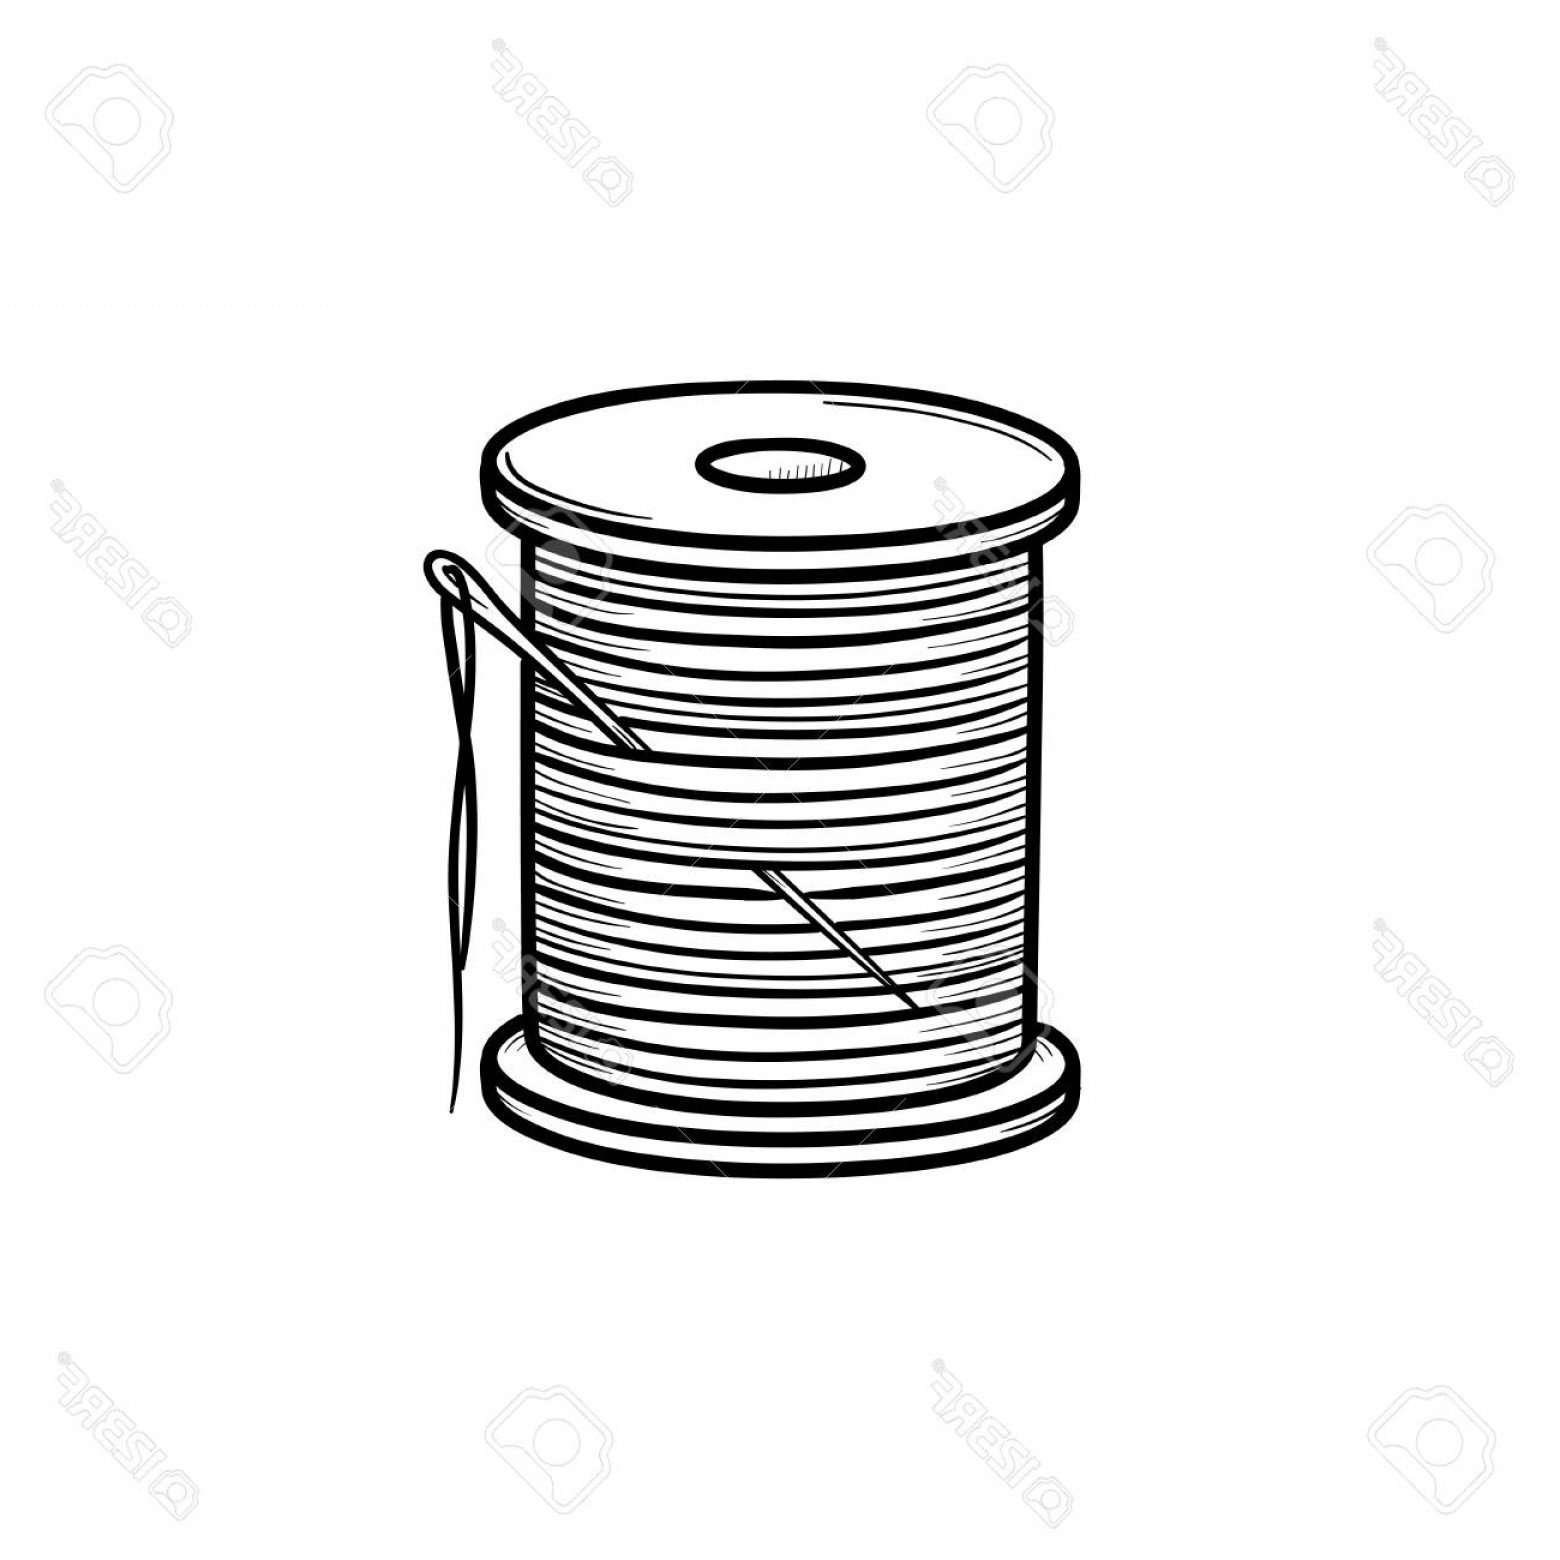 Sewing Spool Vector: Photostock Vector Thread Spool With Needle Hand Drawn Outline Doodle Icon Cotton Thread And Needle Vector Sketch Illus